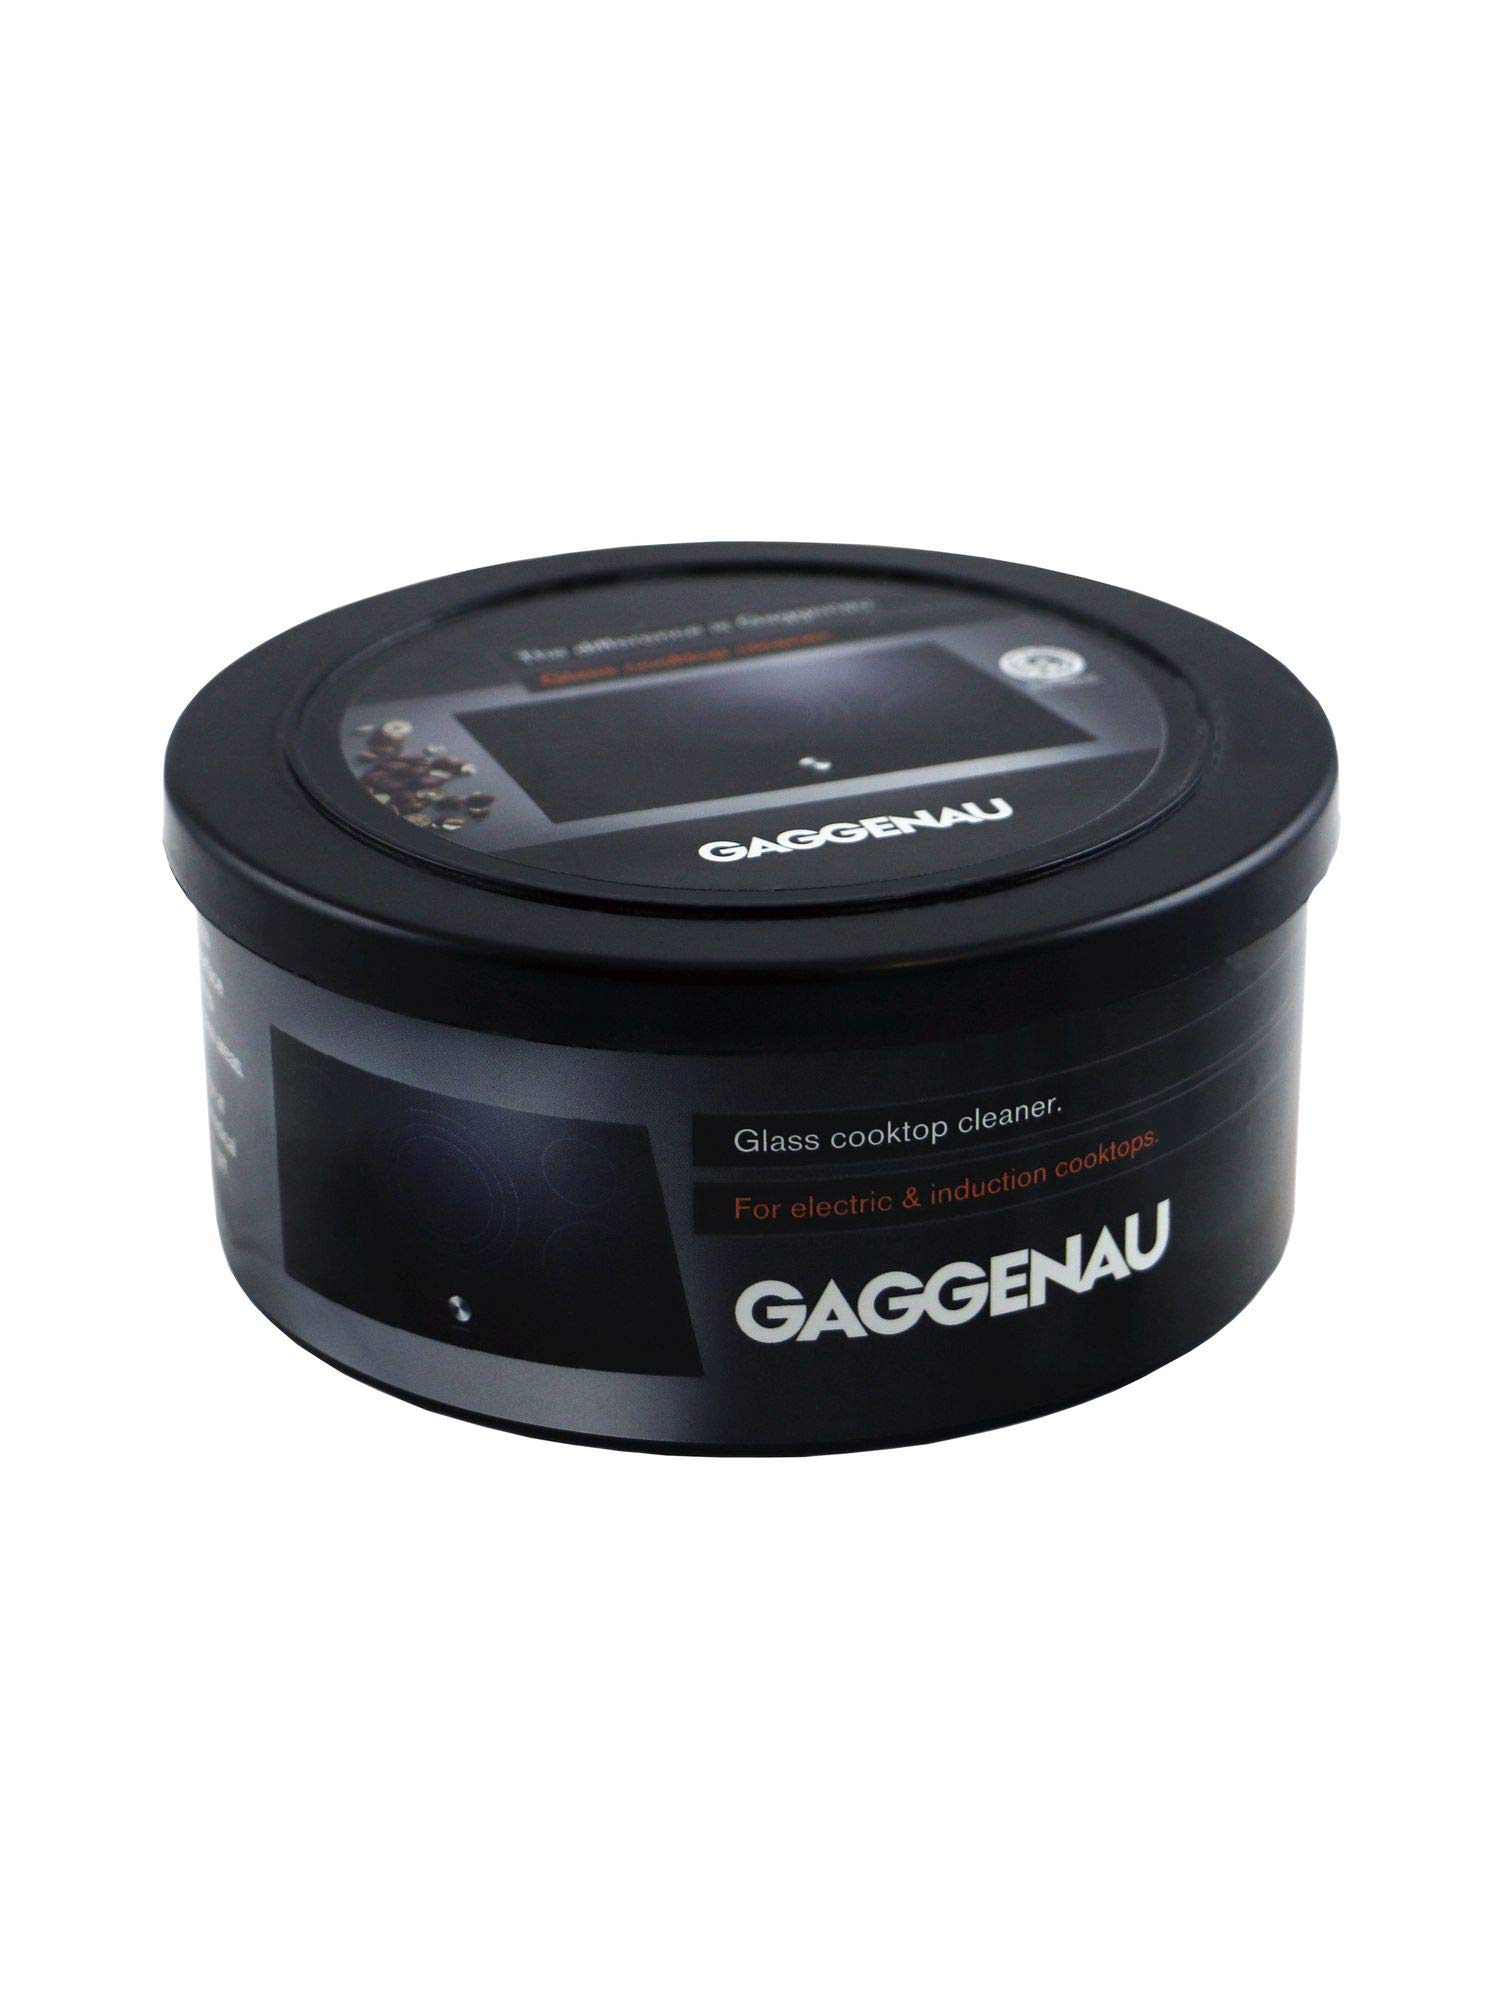 Gaggenau 12010032 Glass Cooktop Cleaner For electric & induction cooktops Set of Two 12-ounce tubs